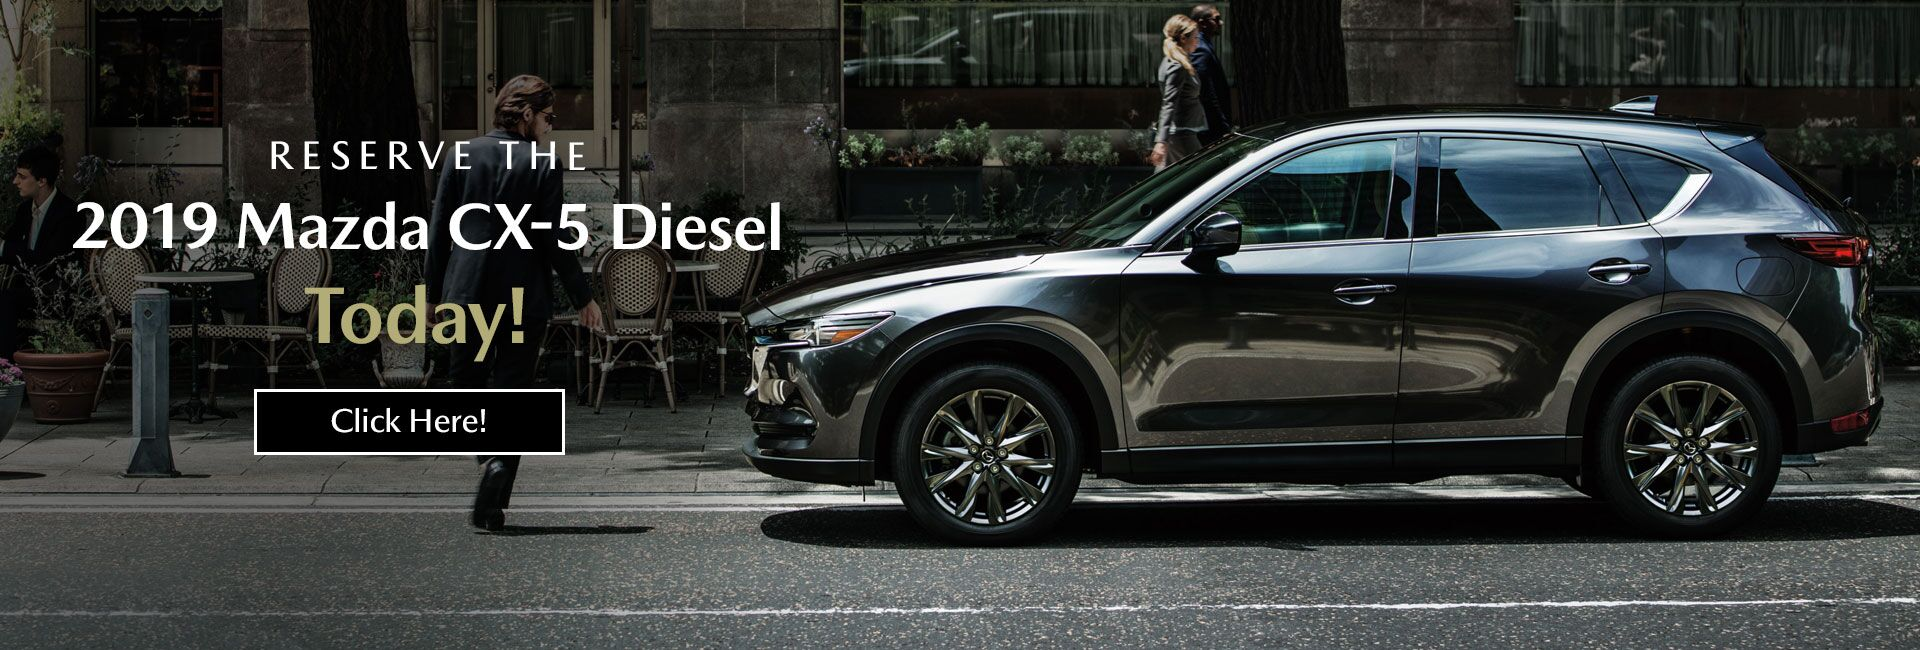 Reserve the 2019 Mazda CX-5 Diesel today!